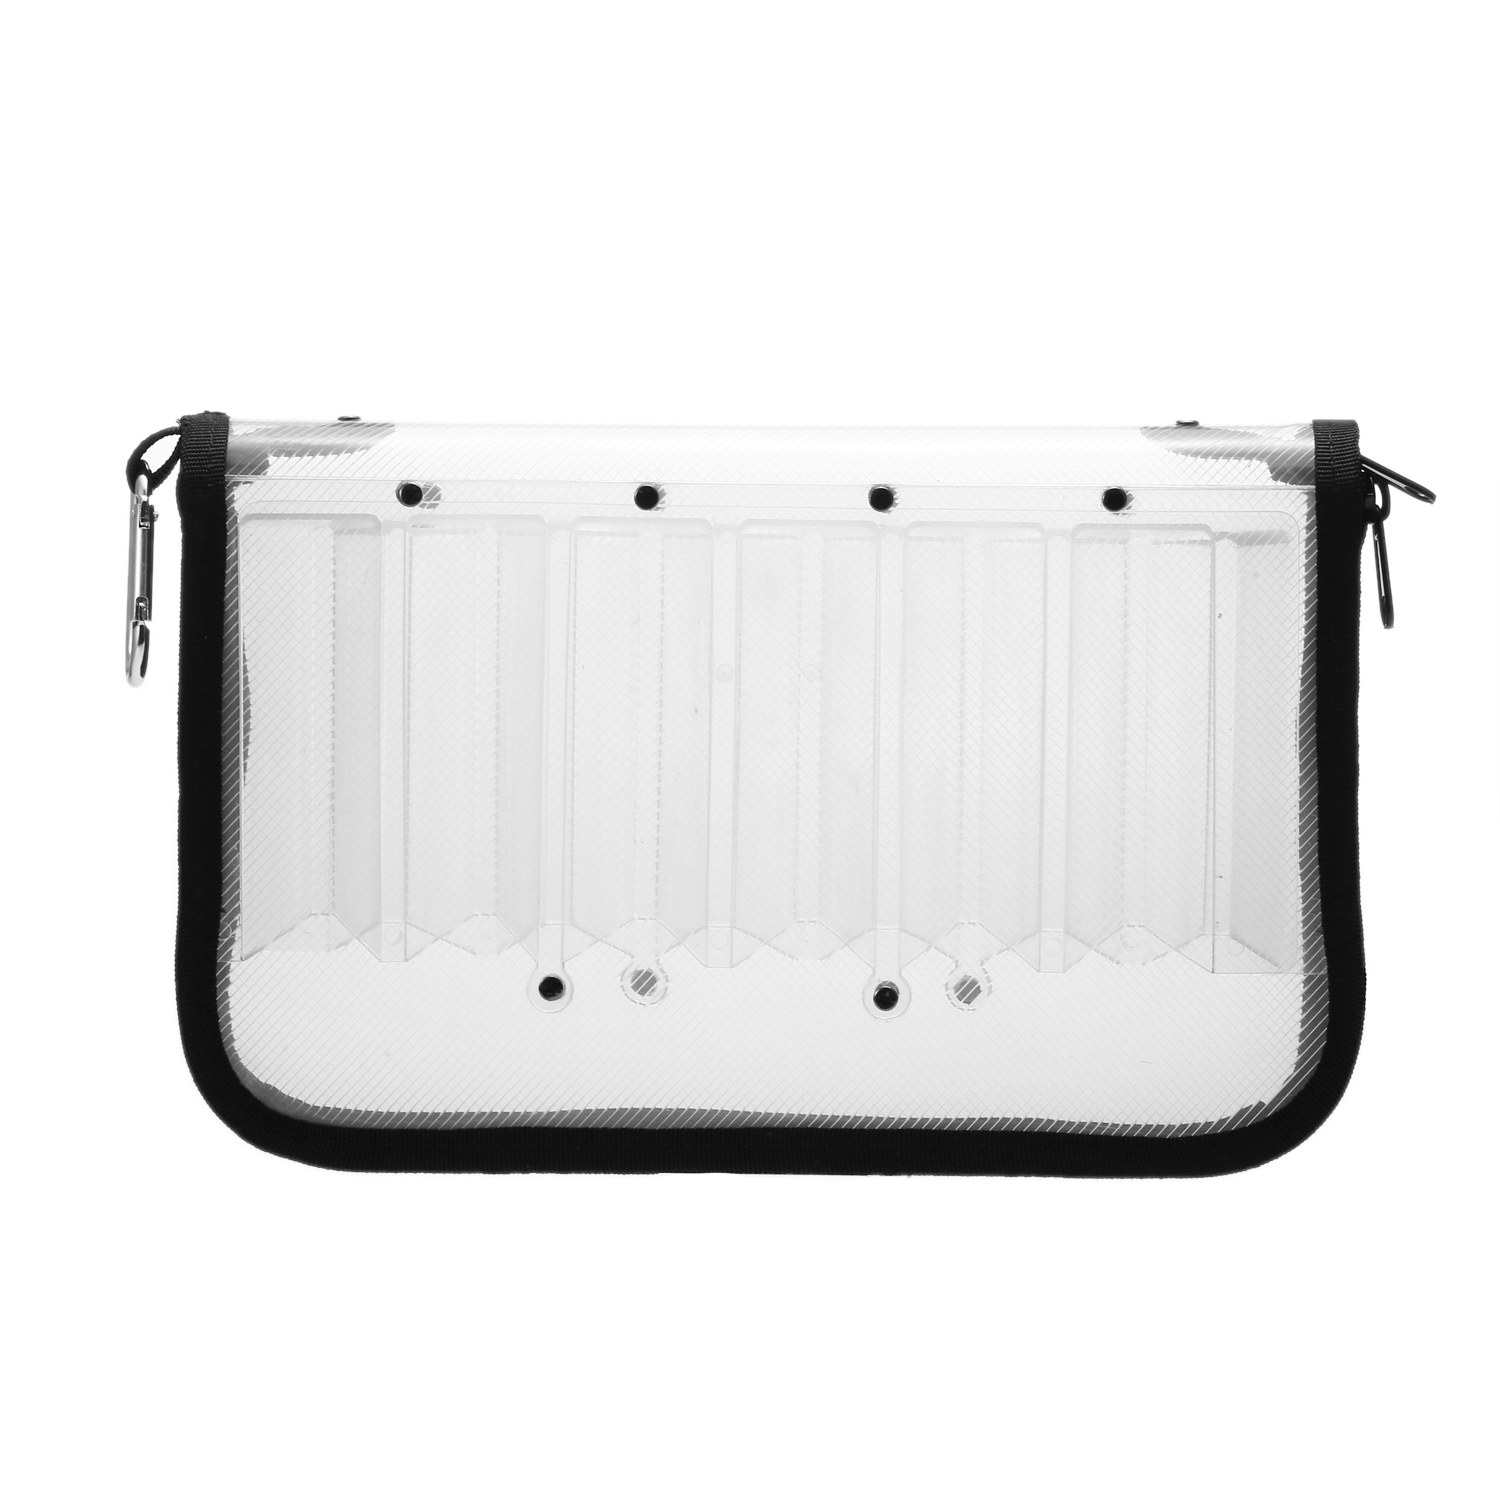 Double Sided Fishing Lure Tackle Box Case for <font><b>Squid</b></font> <font><b>Jig</b></font> Hooks Storage Box <font><b>Bag</b></font> Case 12 Compartments Waterproof image